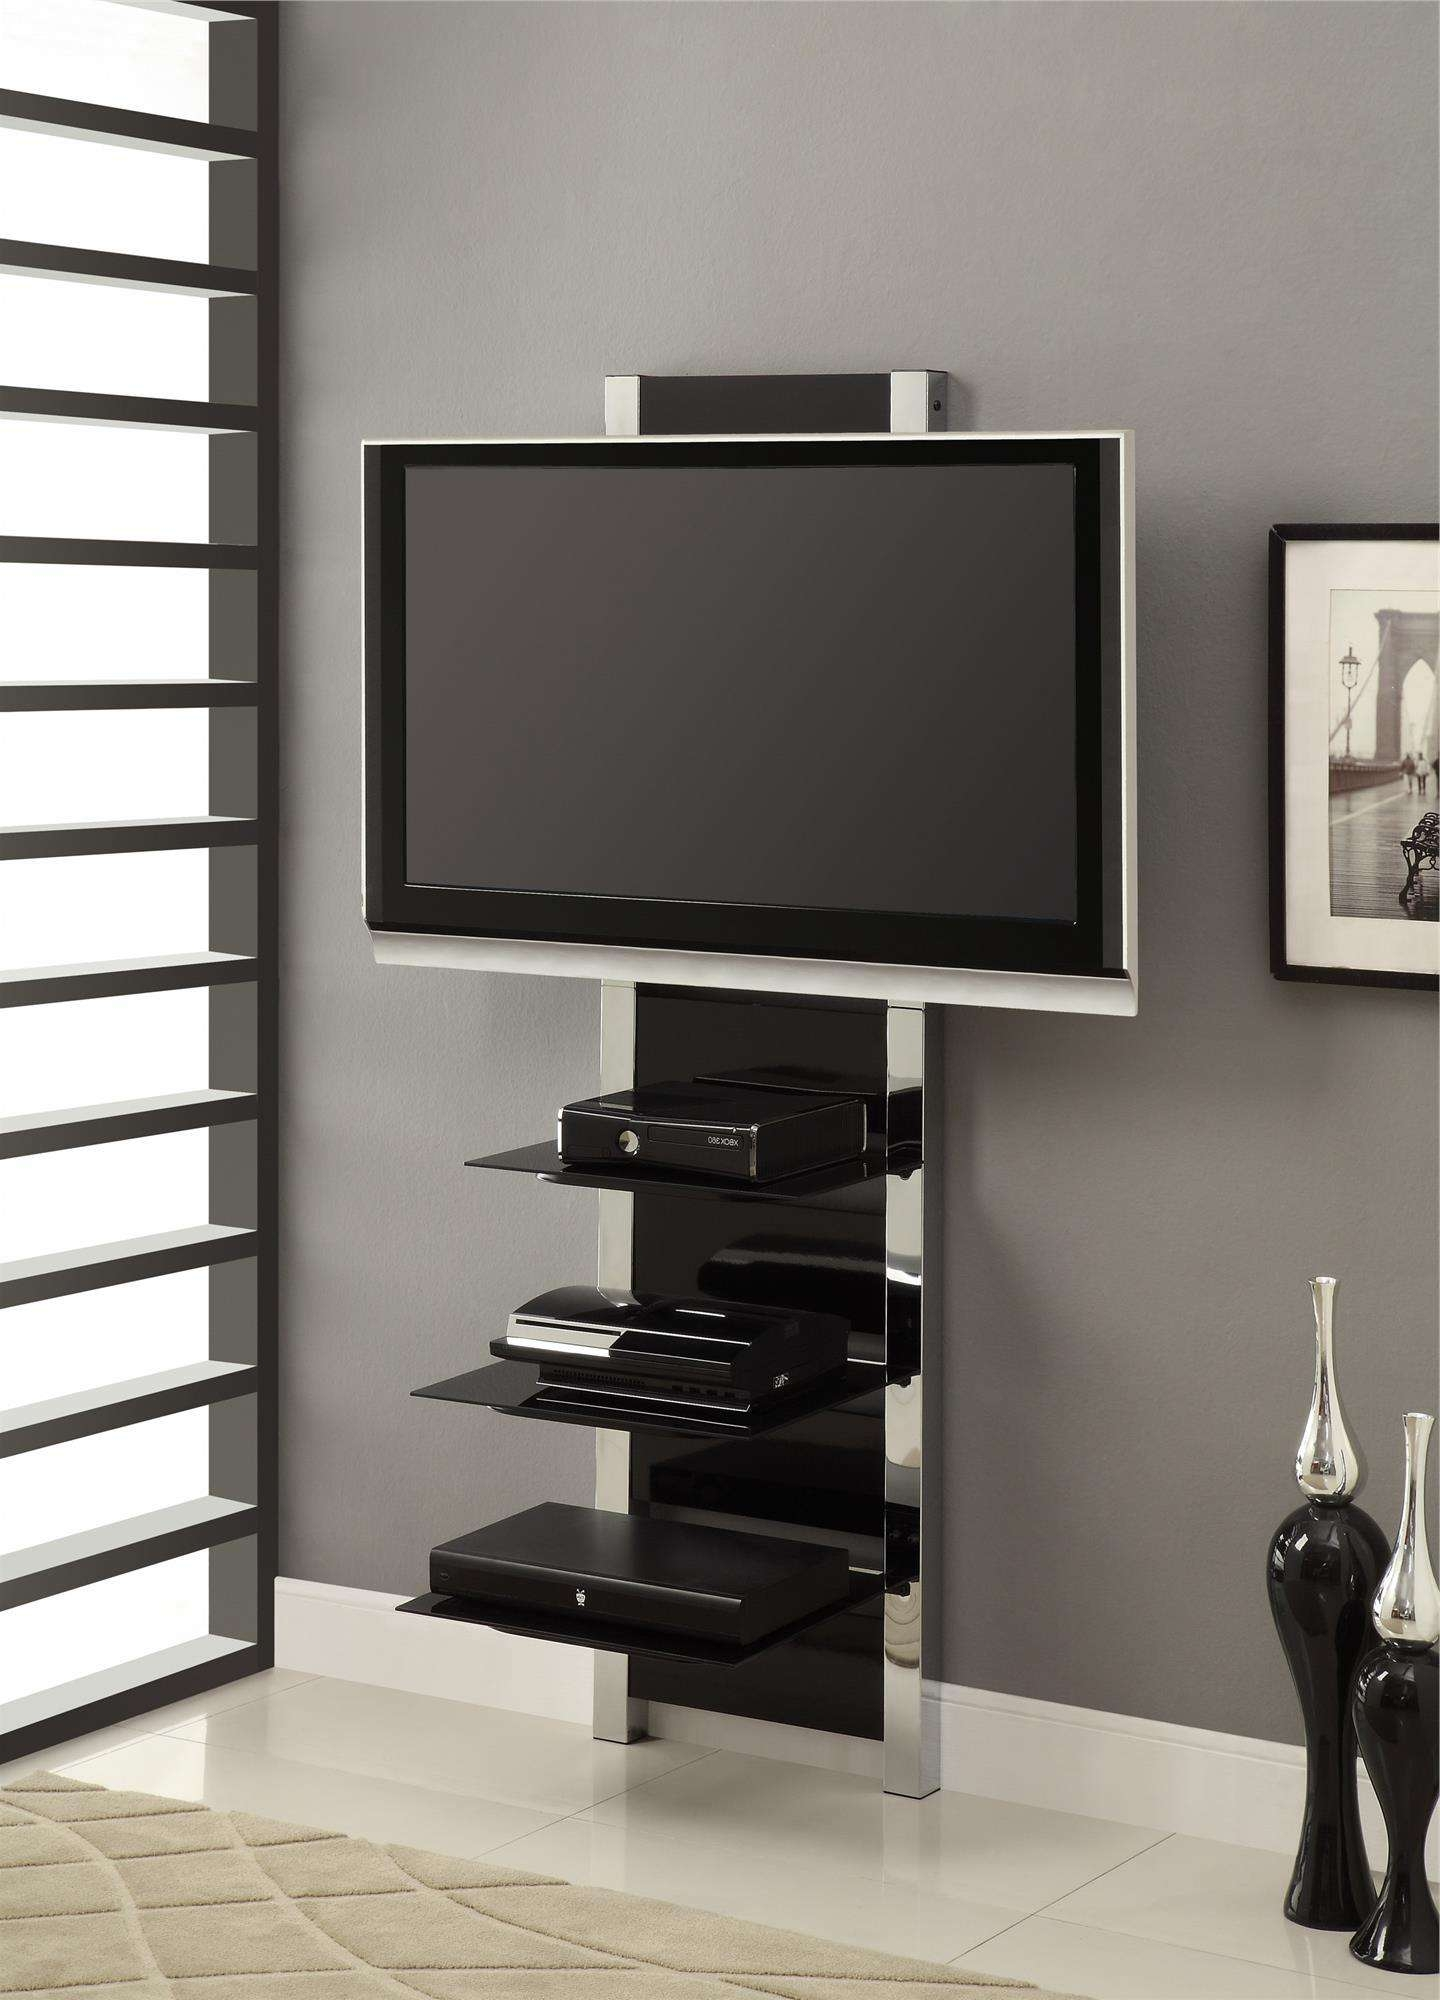 Ameriwood Furniture | Altra Furniture Altramount Modern Tv Stand Pertaining To Tv Stands For 43 Inch Tv (View 1 of 15)